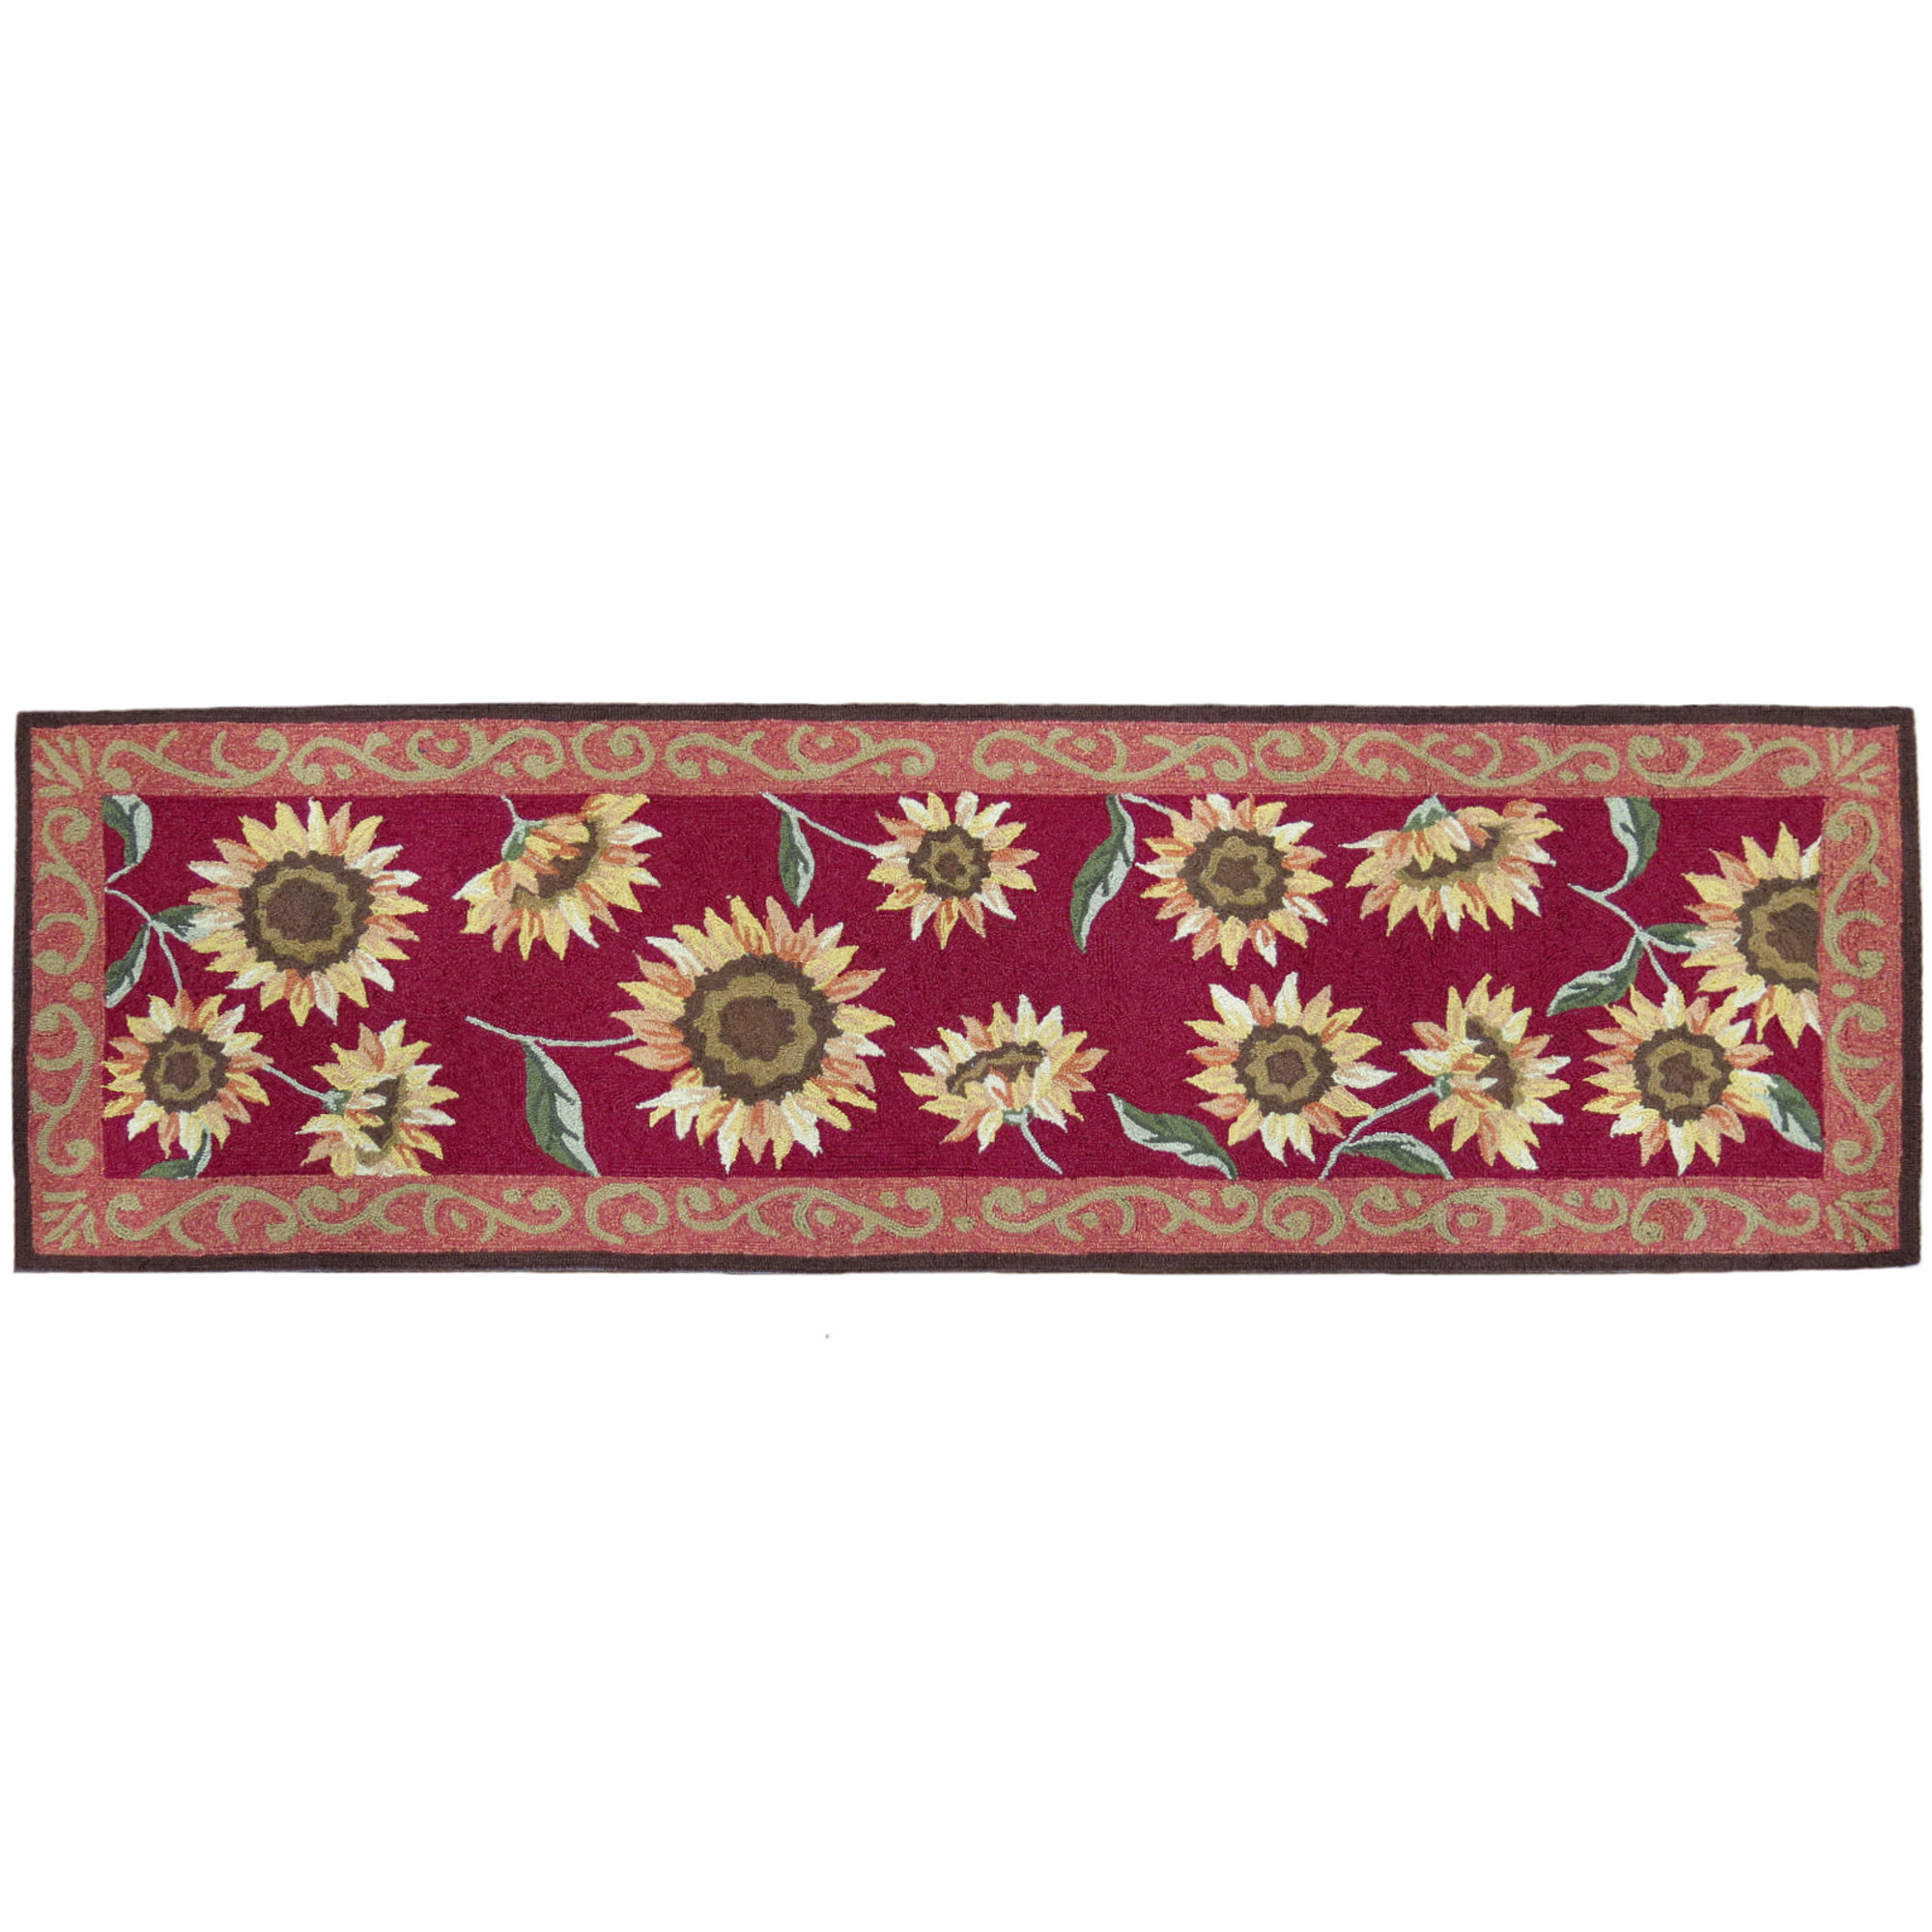 Provence Sunflowers Floral Runner Rug